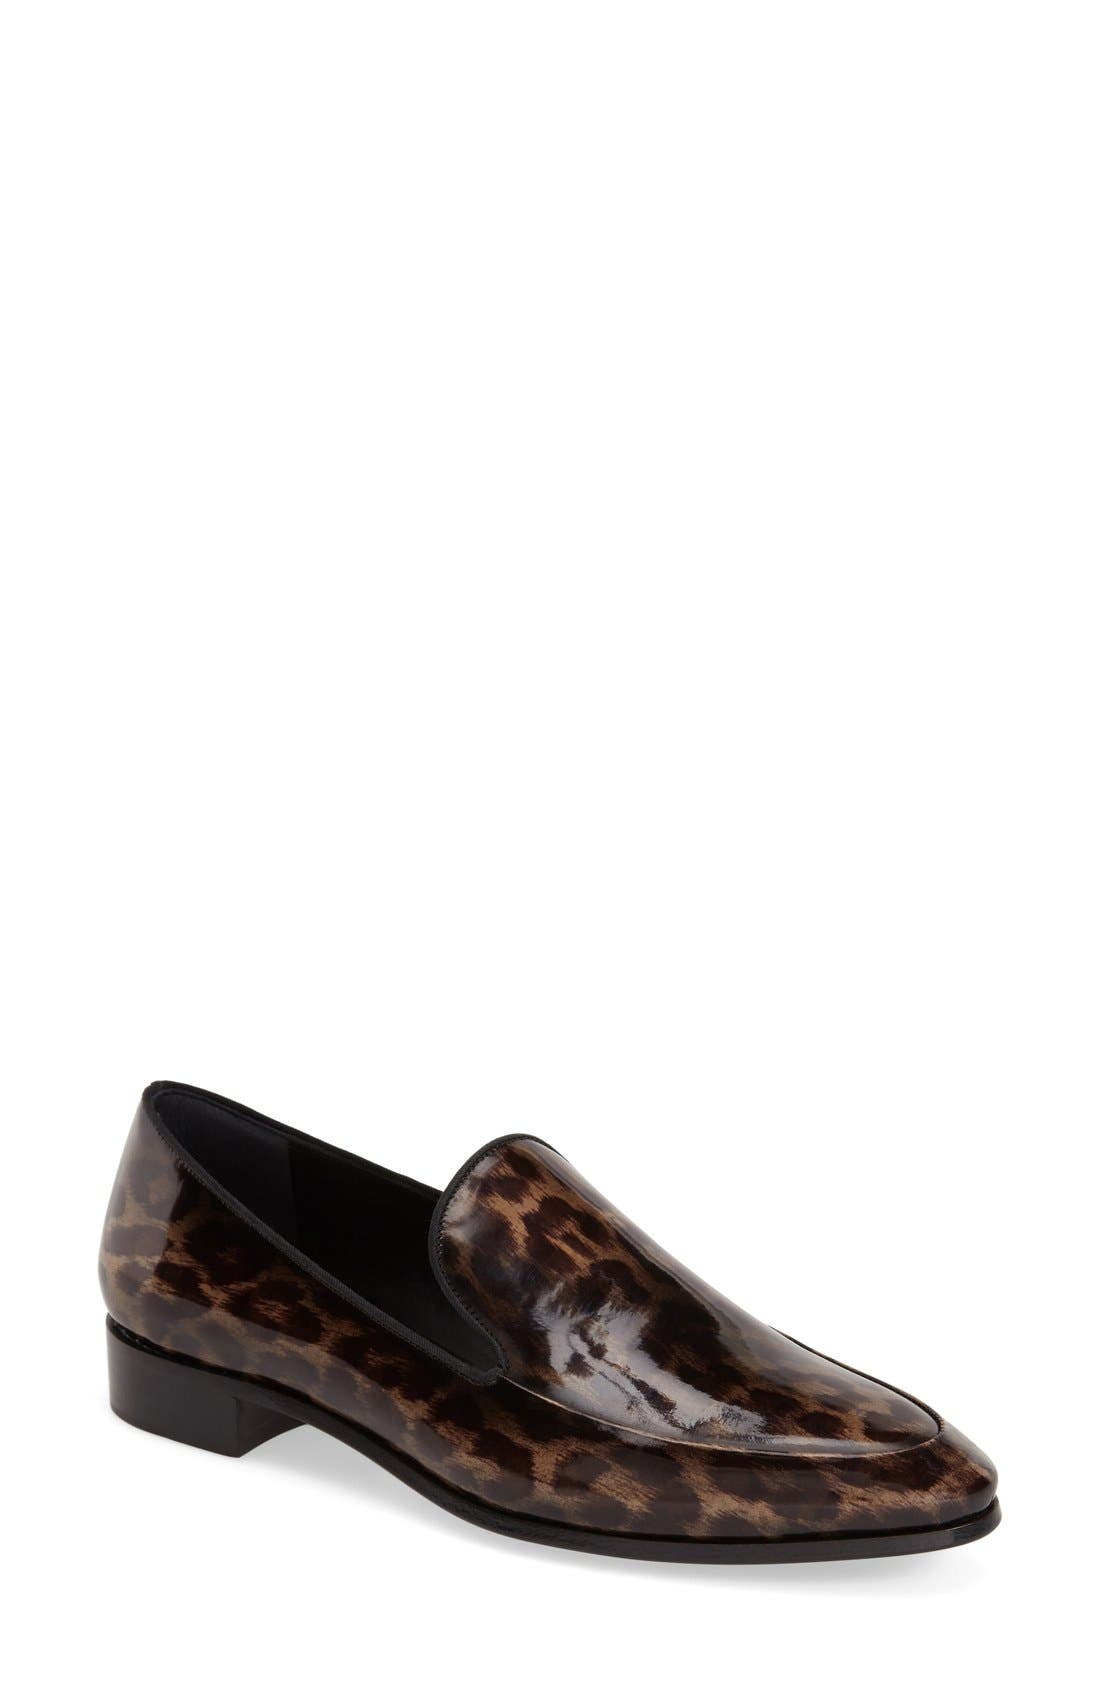 Leopard Print Loafer,                             Main thumbnail 1, color,                             200